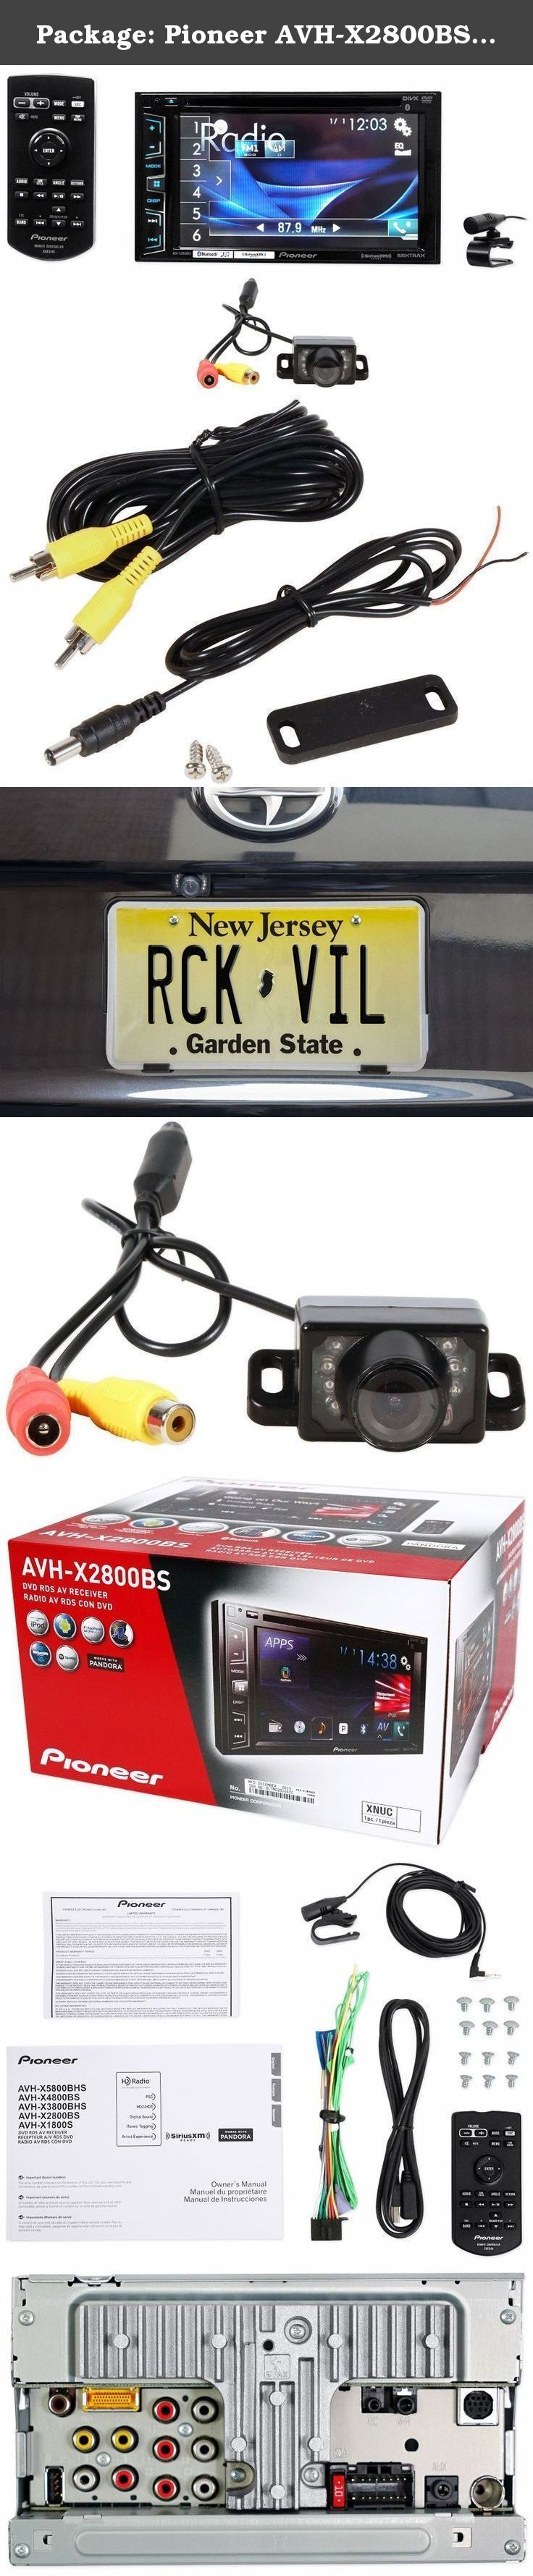 Package pioneer car audio monitor receiver with bluetooth rockville rear view backup car camera